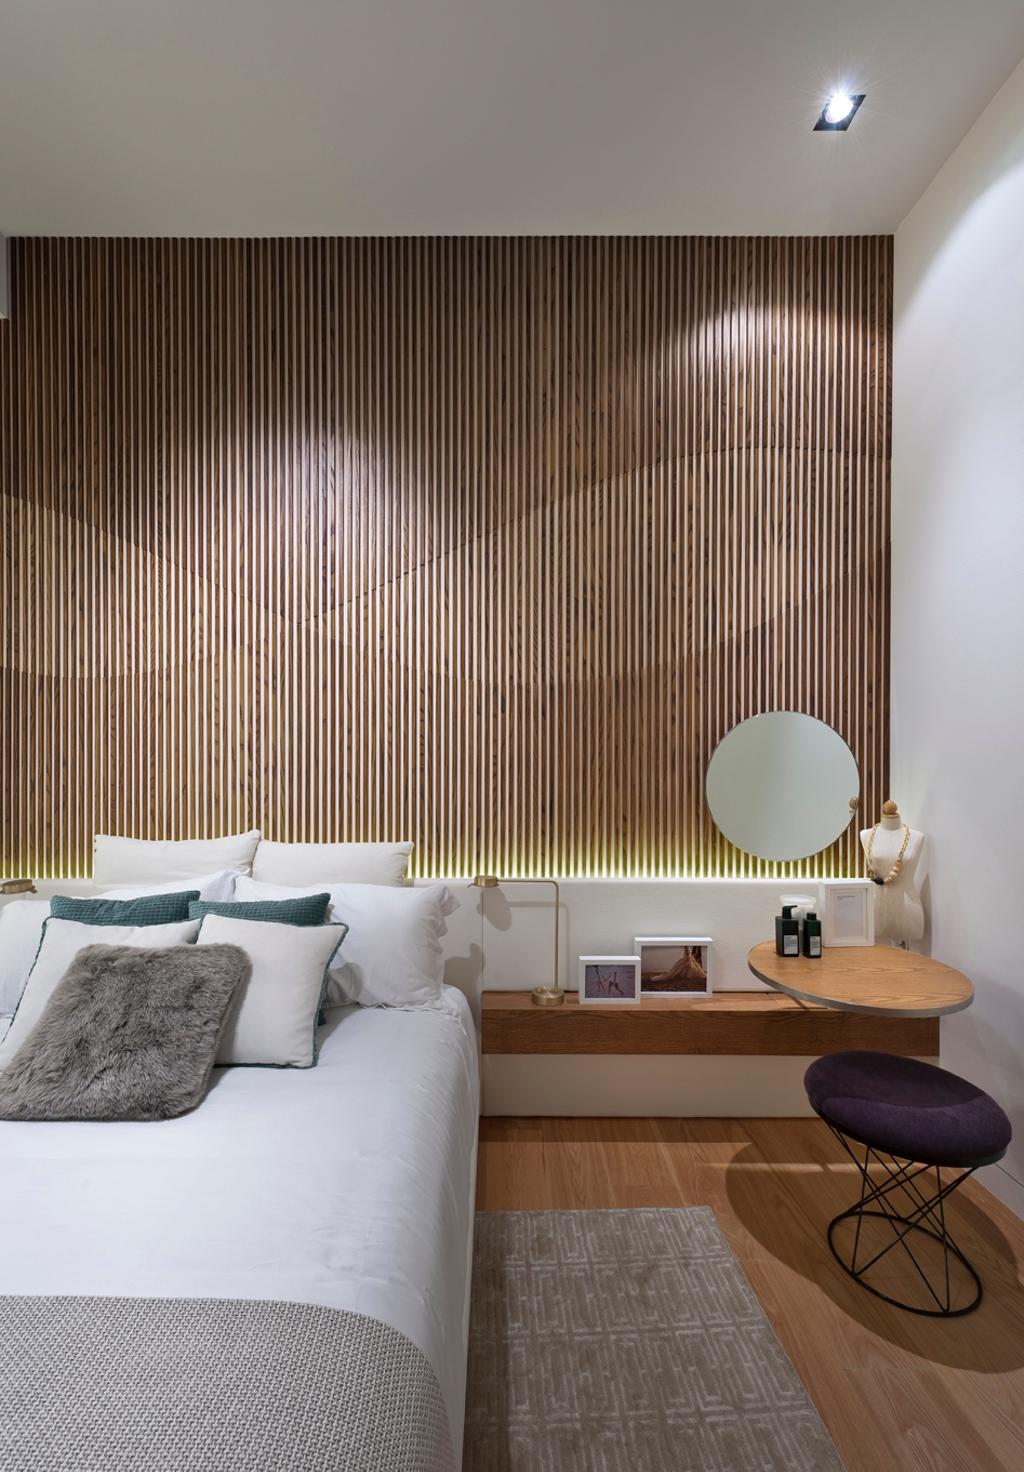 UOL Edge, Commercial, Architect, Ministry of Design, Modern, Bedroom, Wooden Wall, Concealed Lighting, Concealed Lights, Rug, Cushioned Stool, Bedside Table, Wall Mounted Table, Indoors, Interior Design